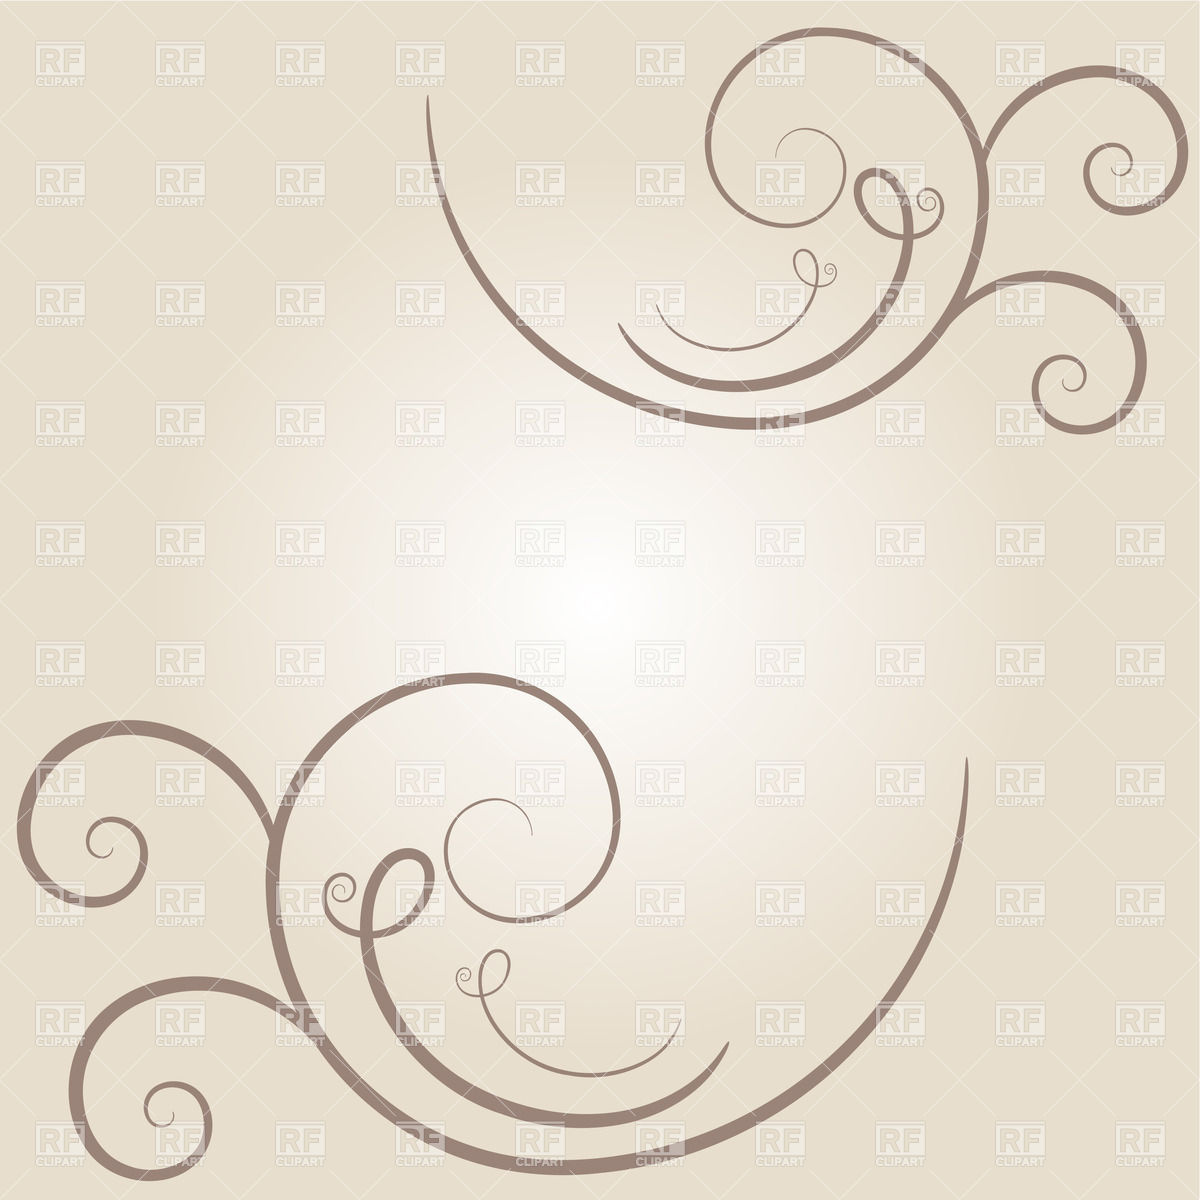 Simple Curl   Vignette Download Royalty Free Vector Clipart  Eps